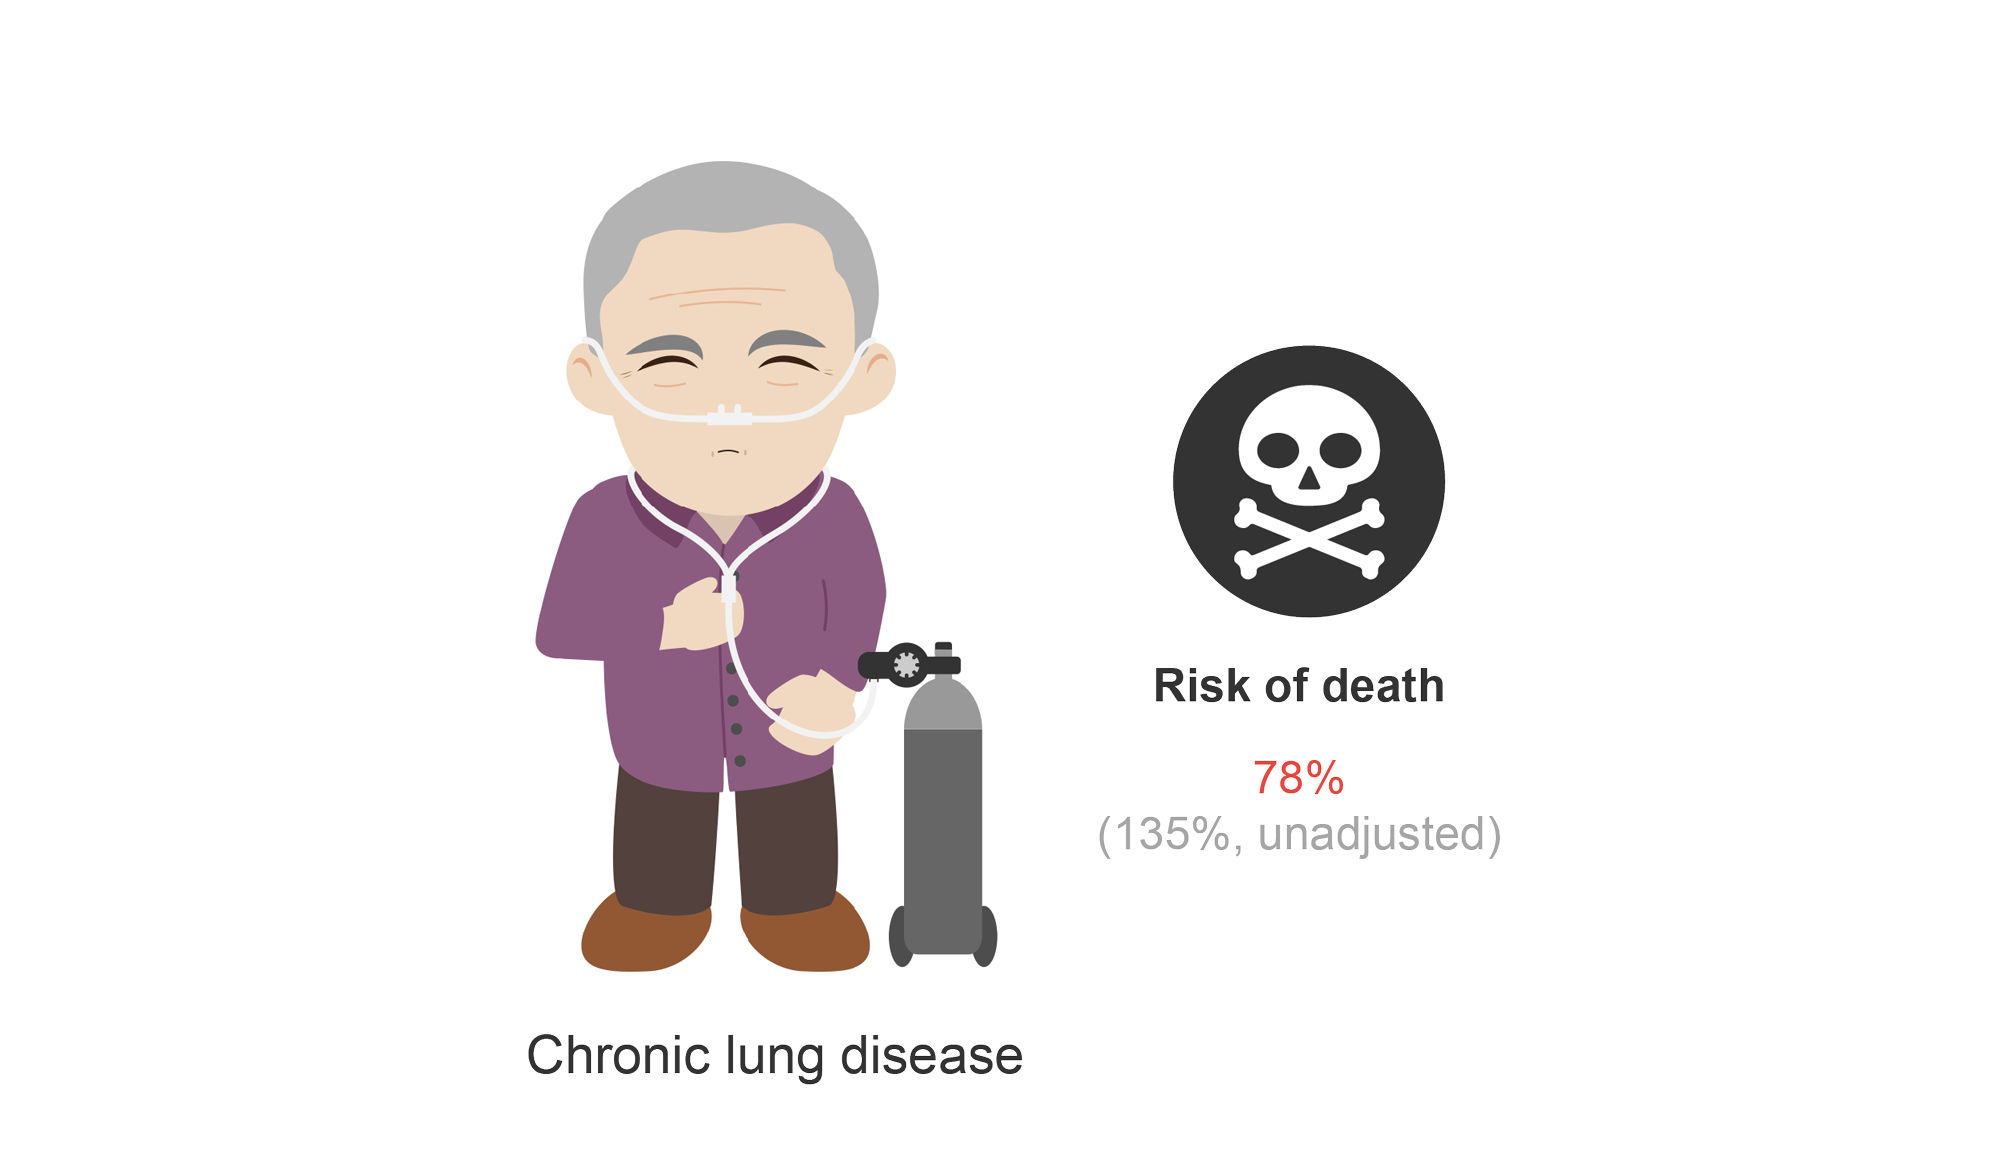 Male patient with chronic lung disease and risk of death (78%). Cartoon